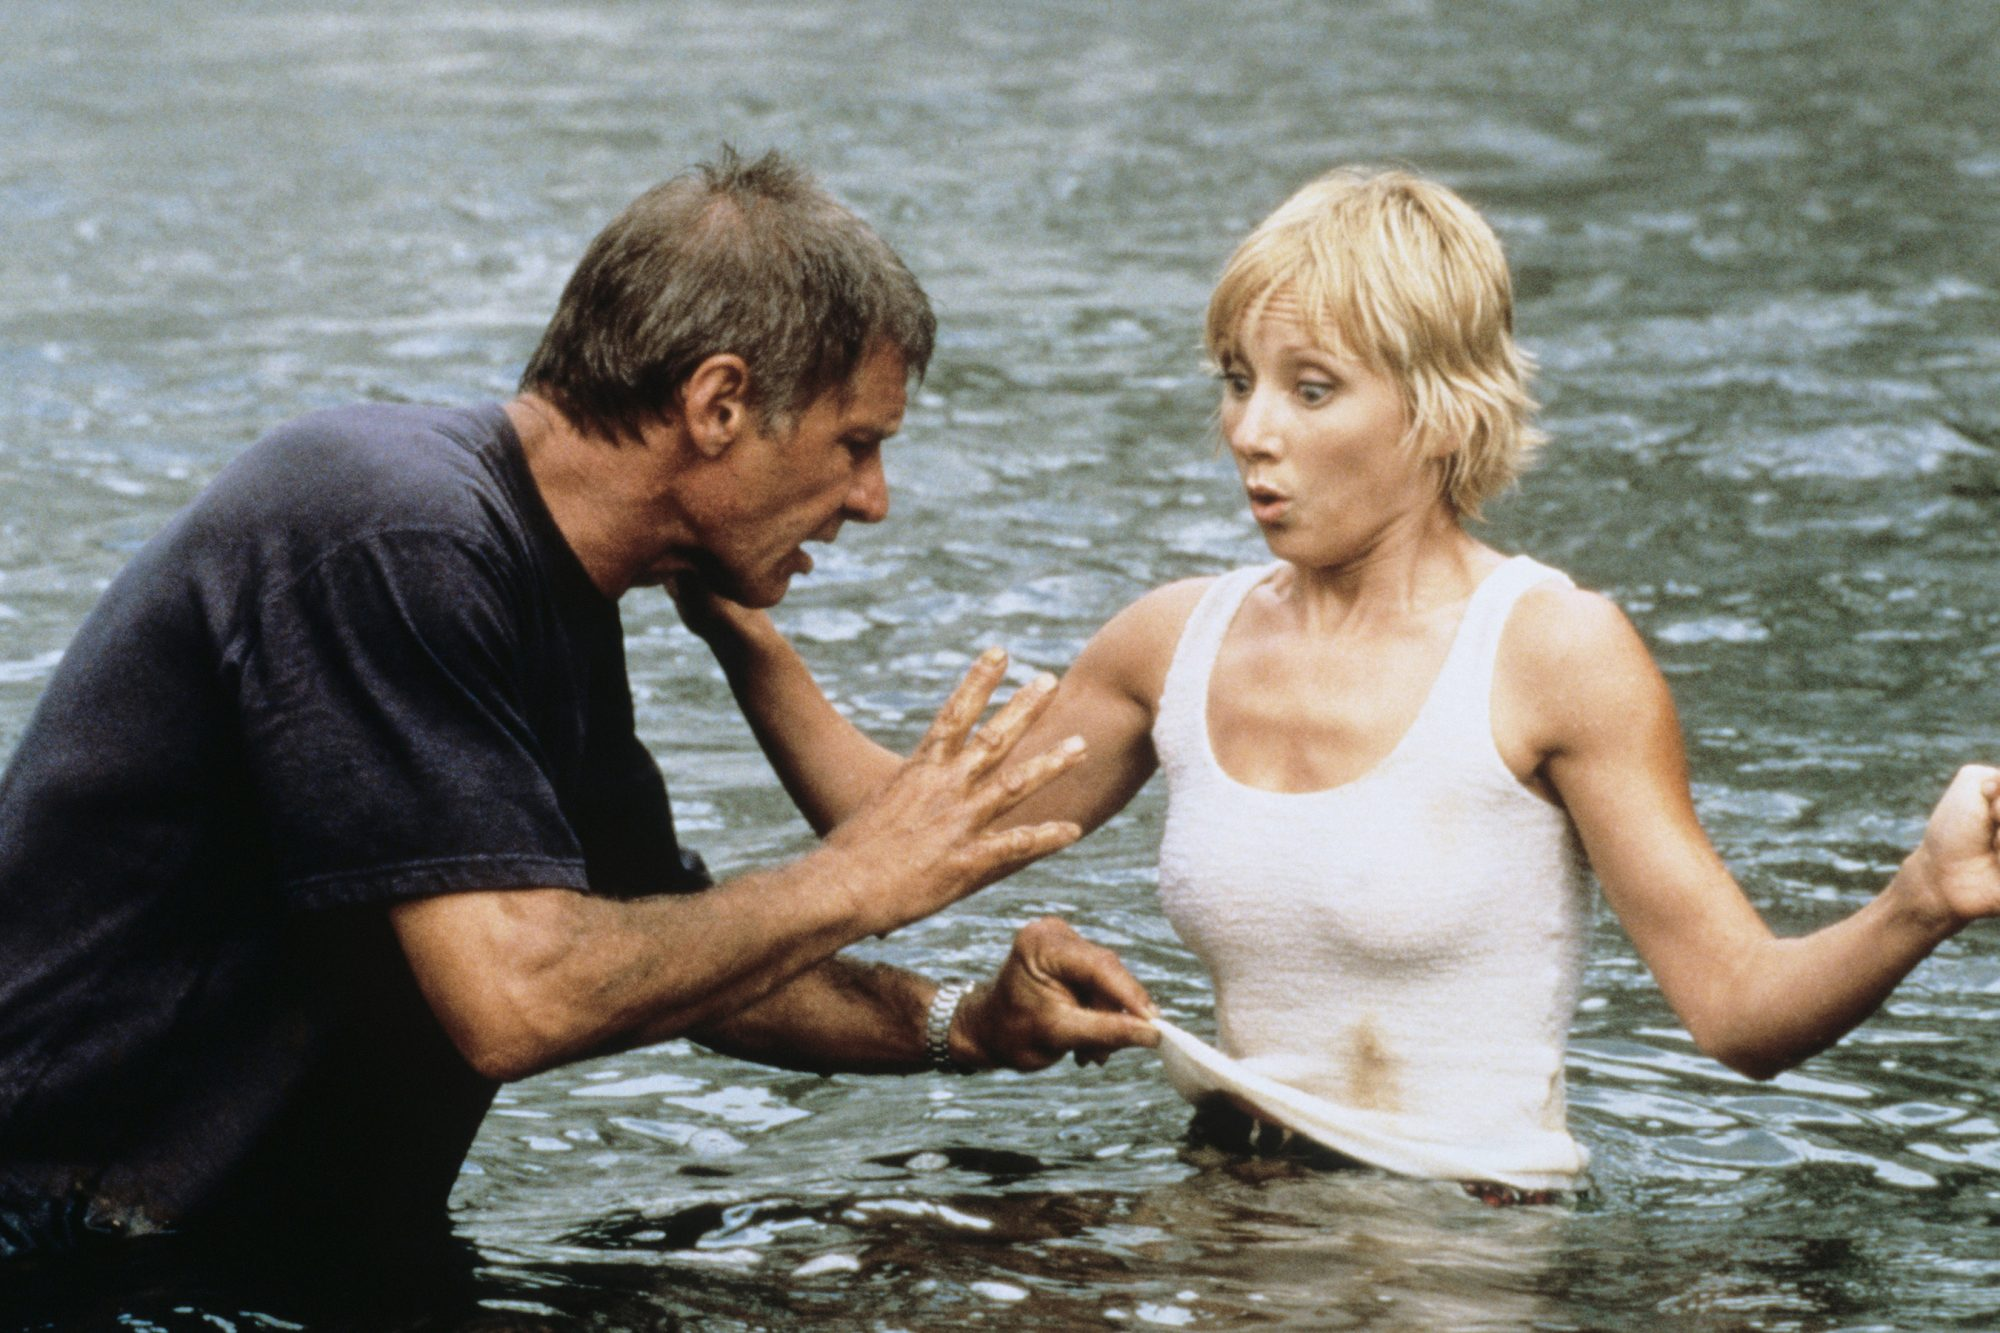 SIX DAYS SEVEN NIGHTS, from left: Harrison Ford, Anne Heche, 1998, © Buena Vista/courtesy Everett Co